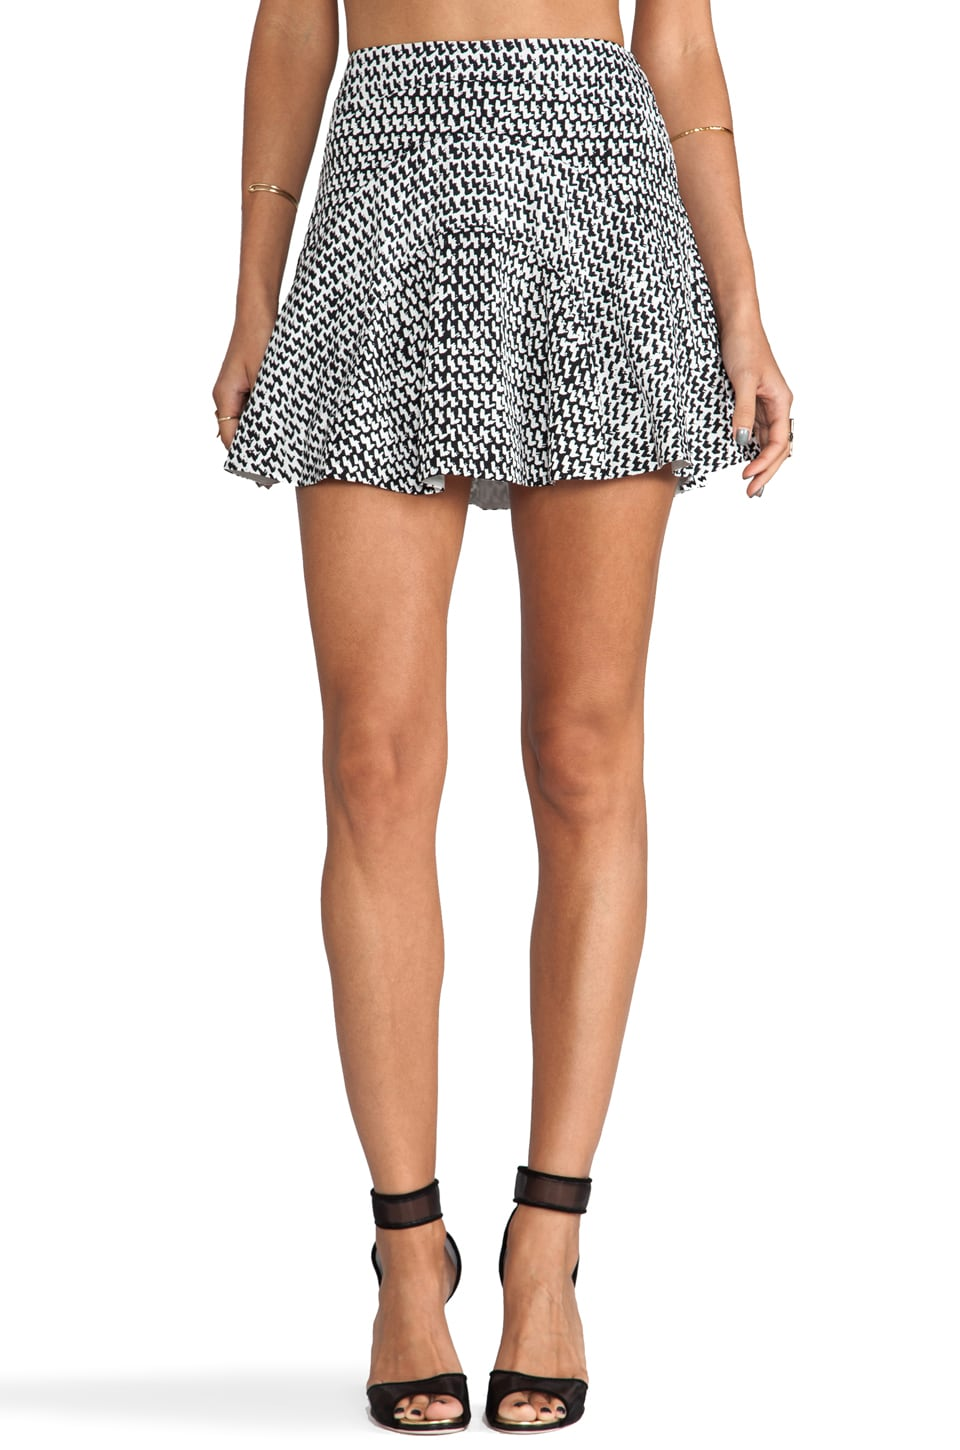 Diane von Furstenberg Runway Tristana Skirt in Tweed Dash Black/Tweed Dash